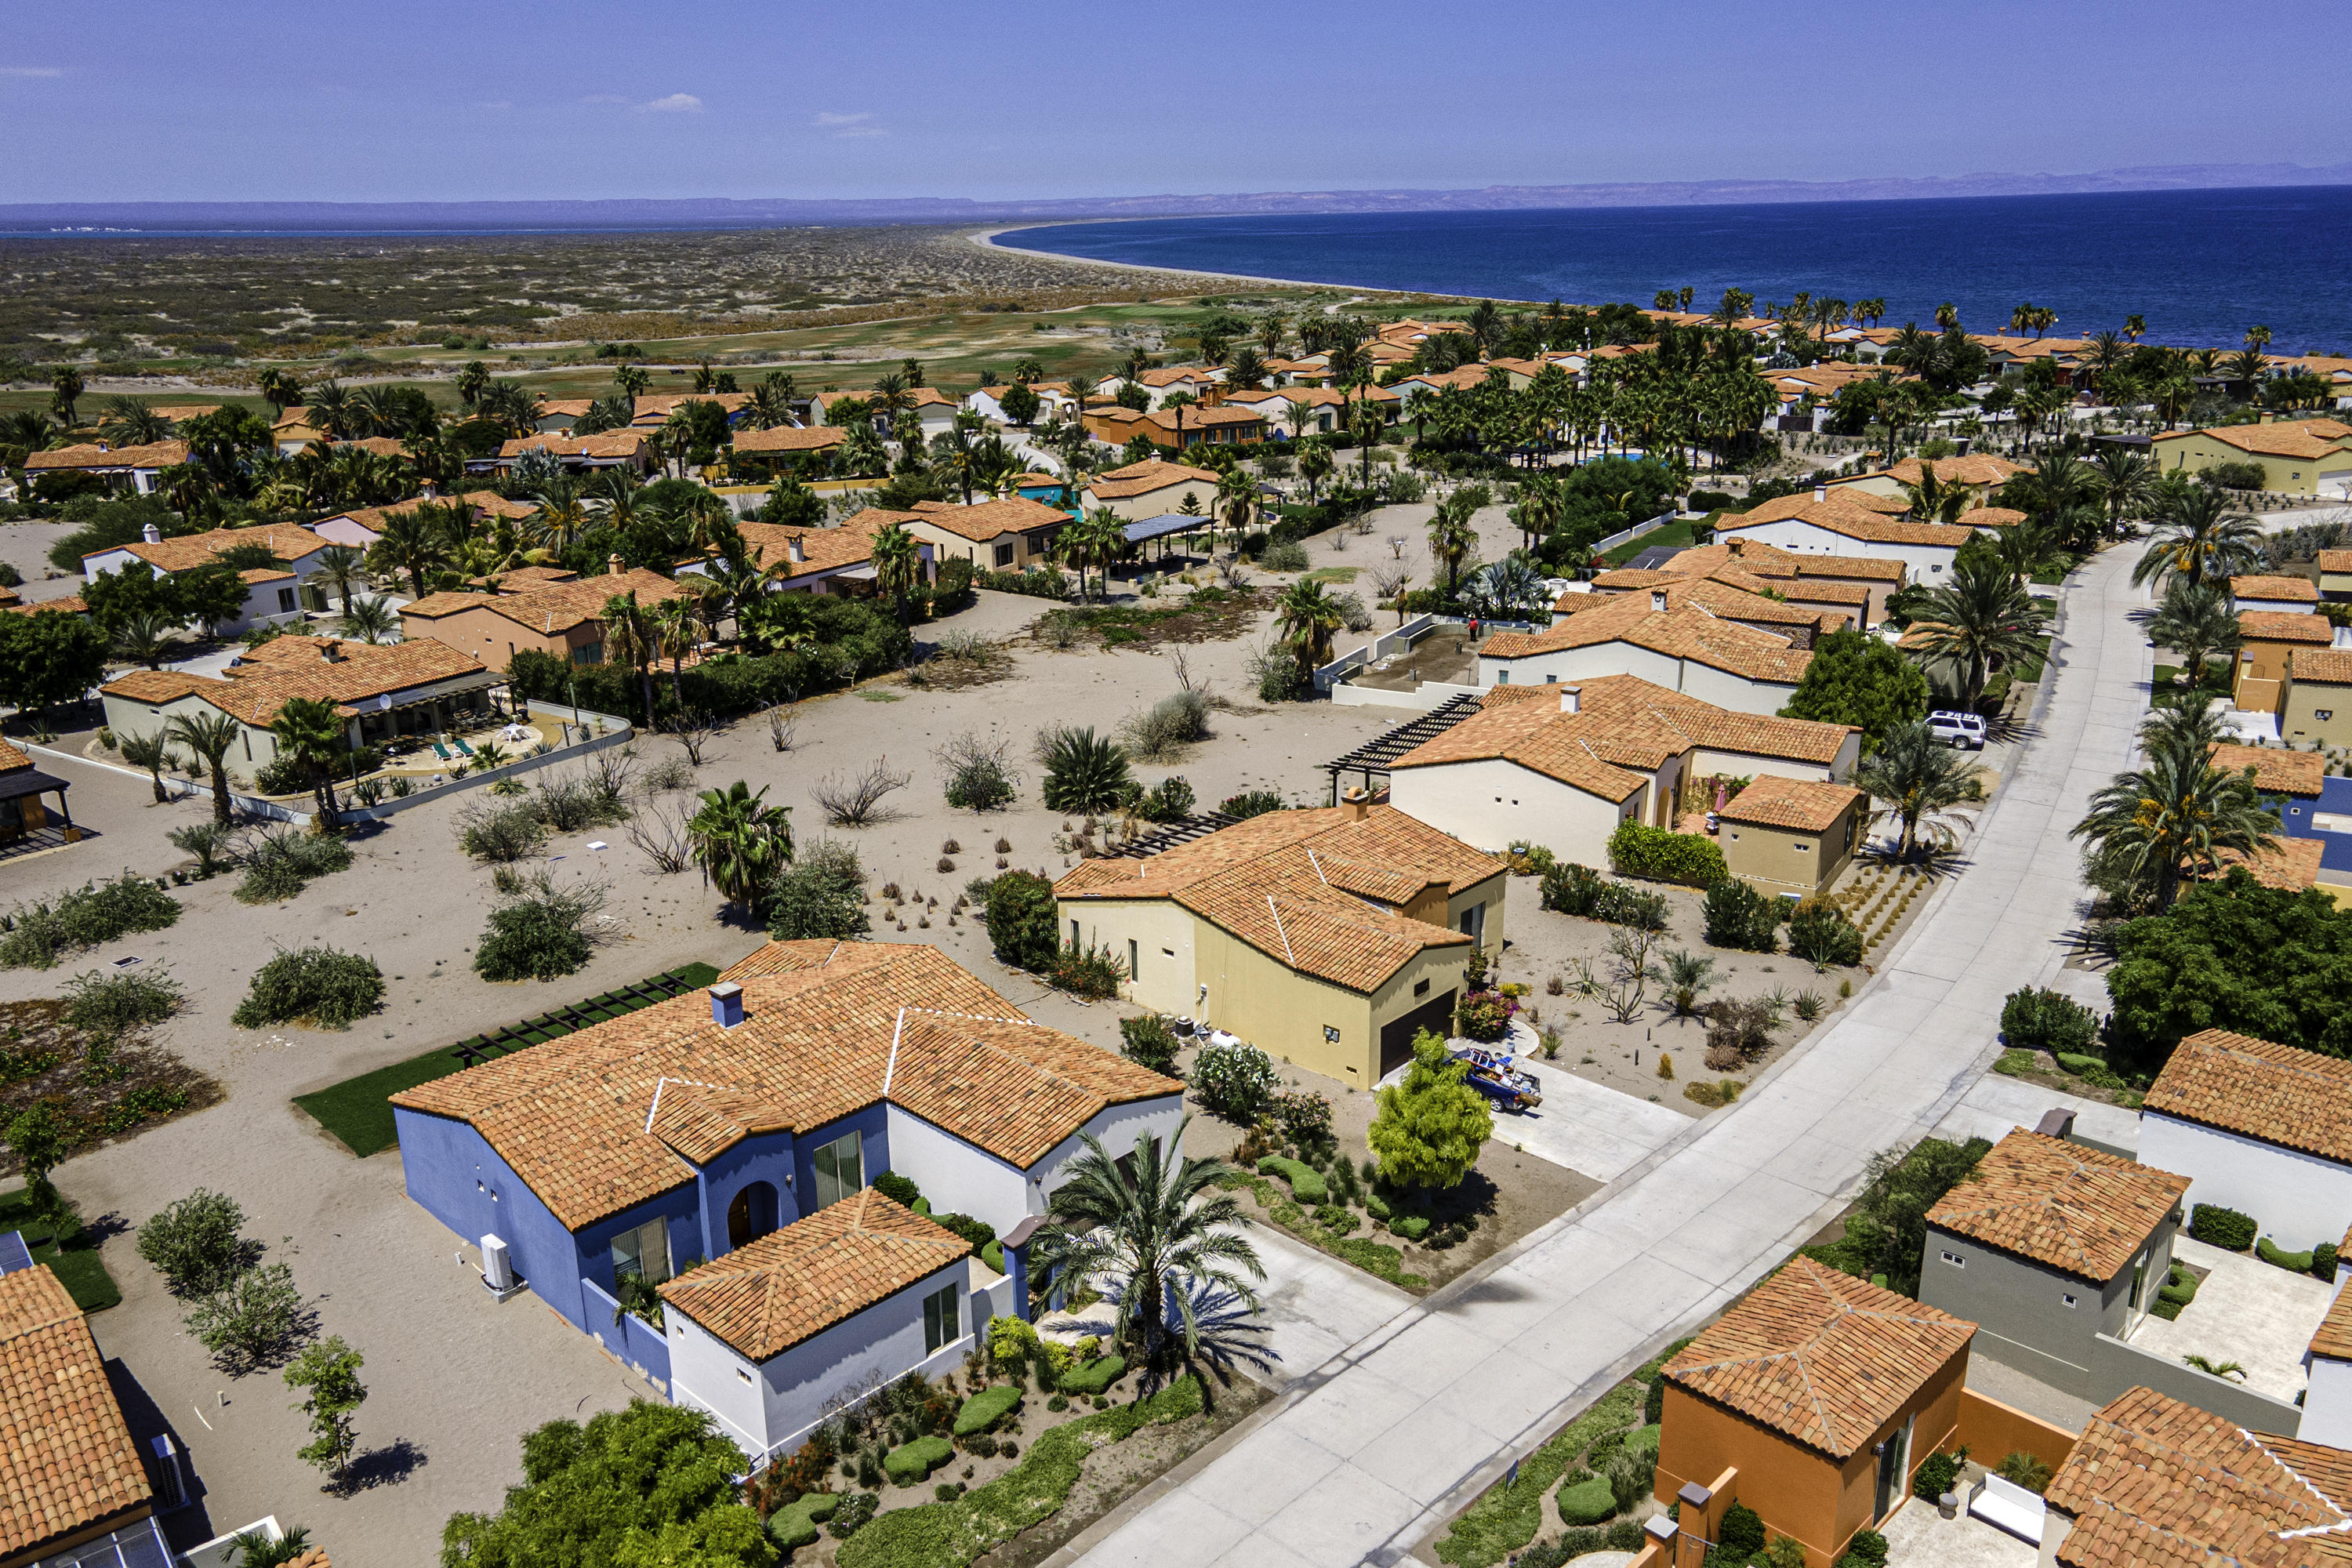 casas close to the beach